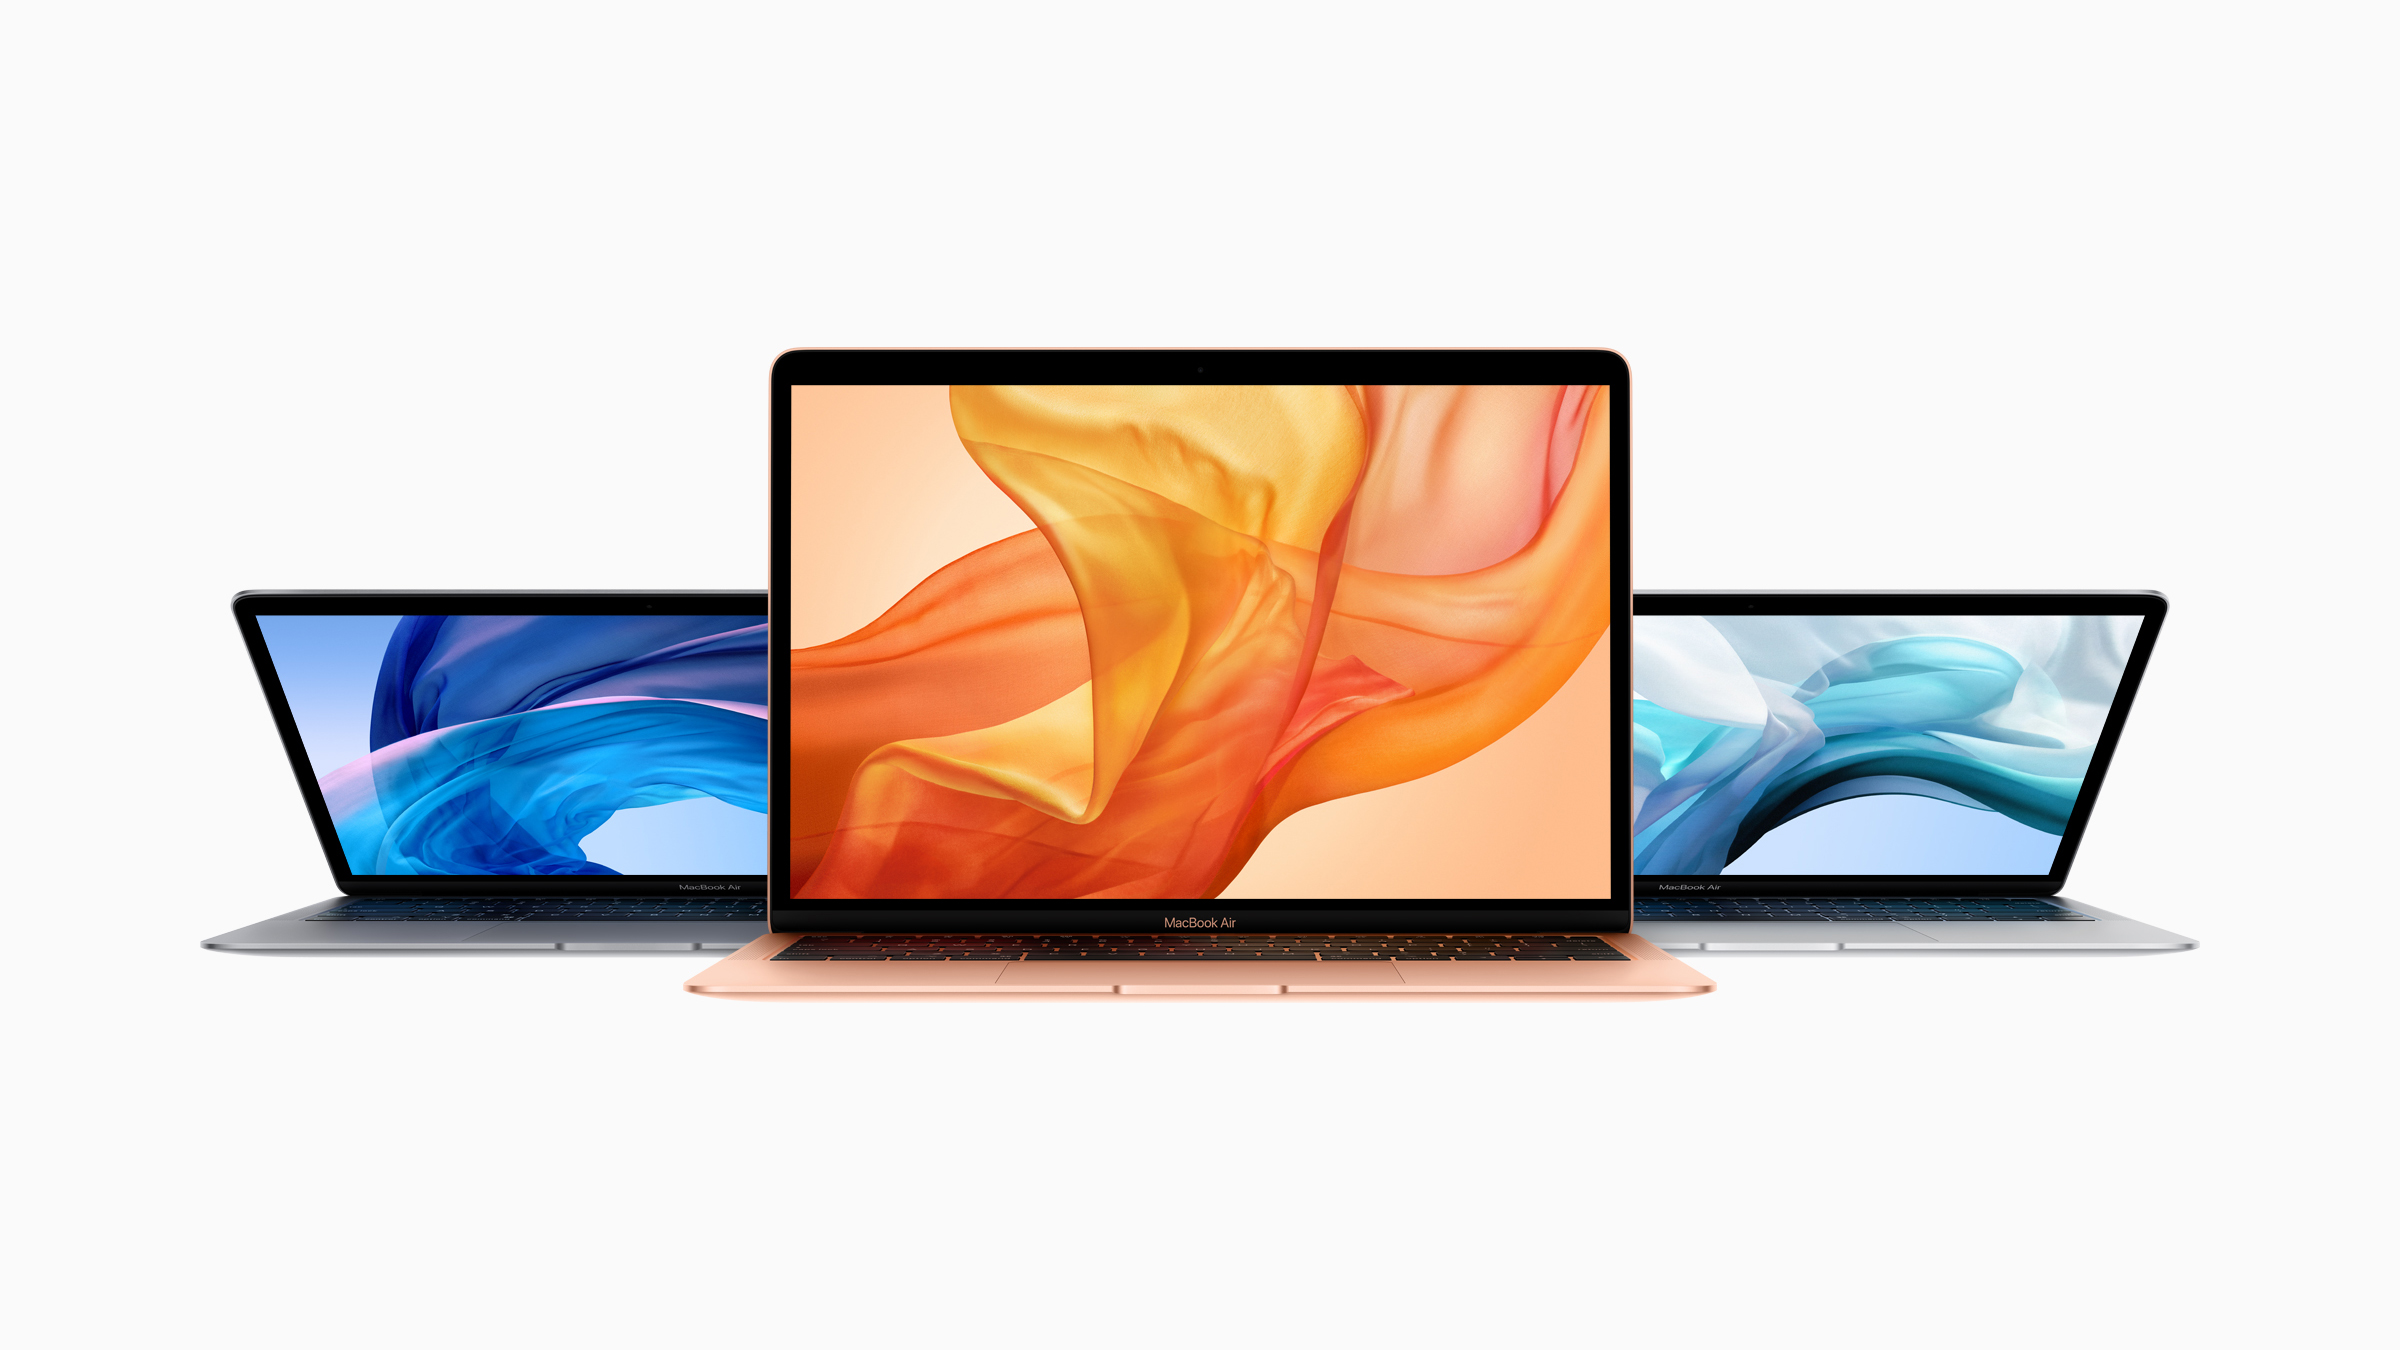 Apple MacBook Air 2018 vs MacBook Air 2015